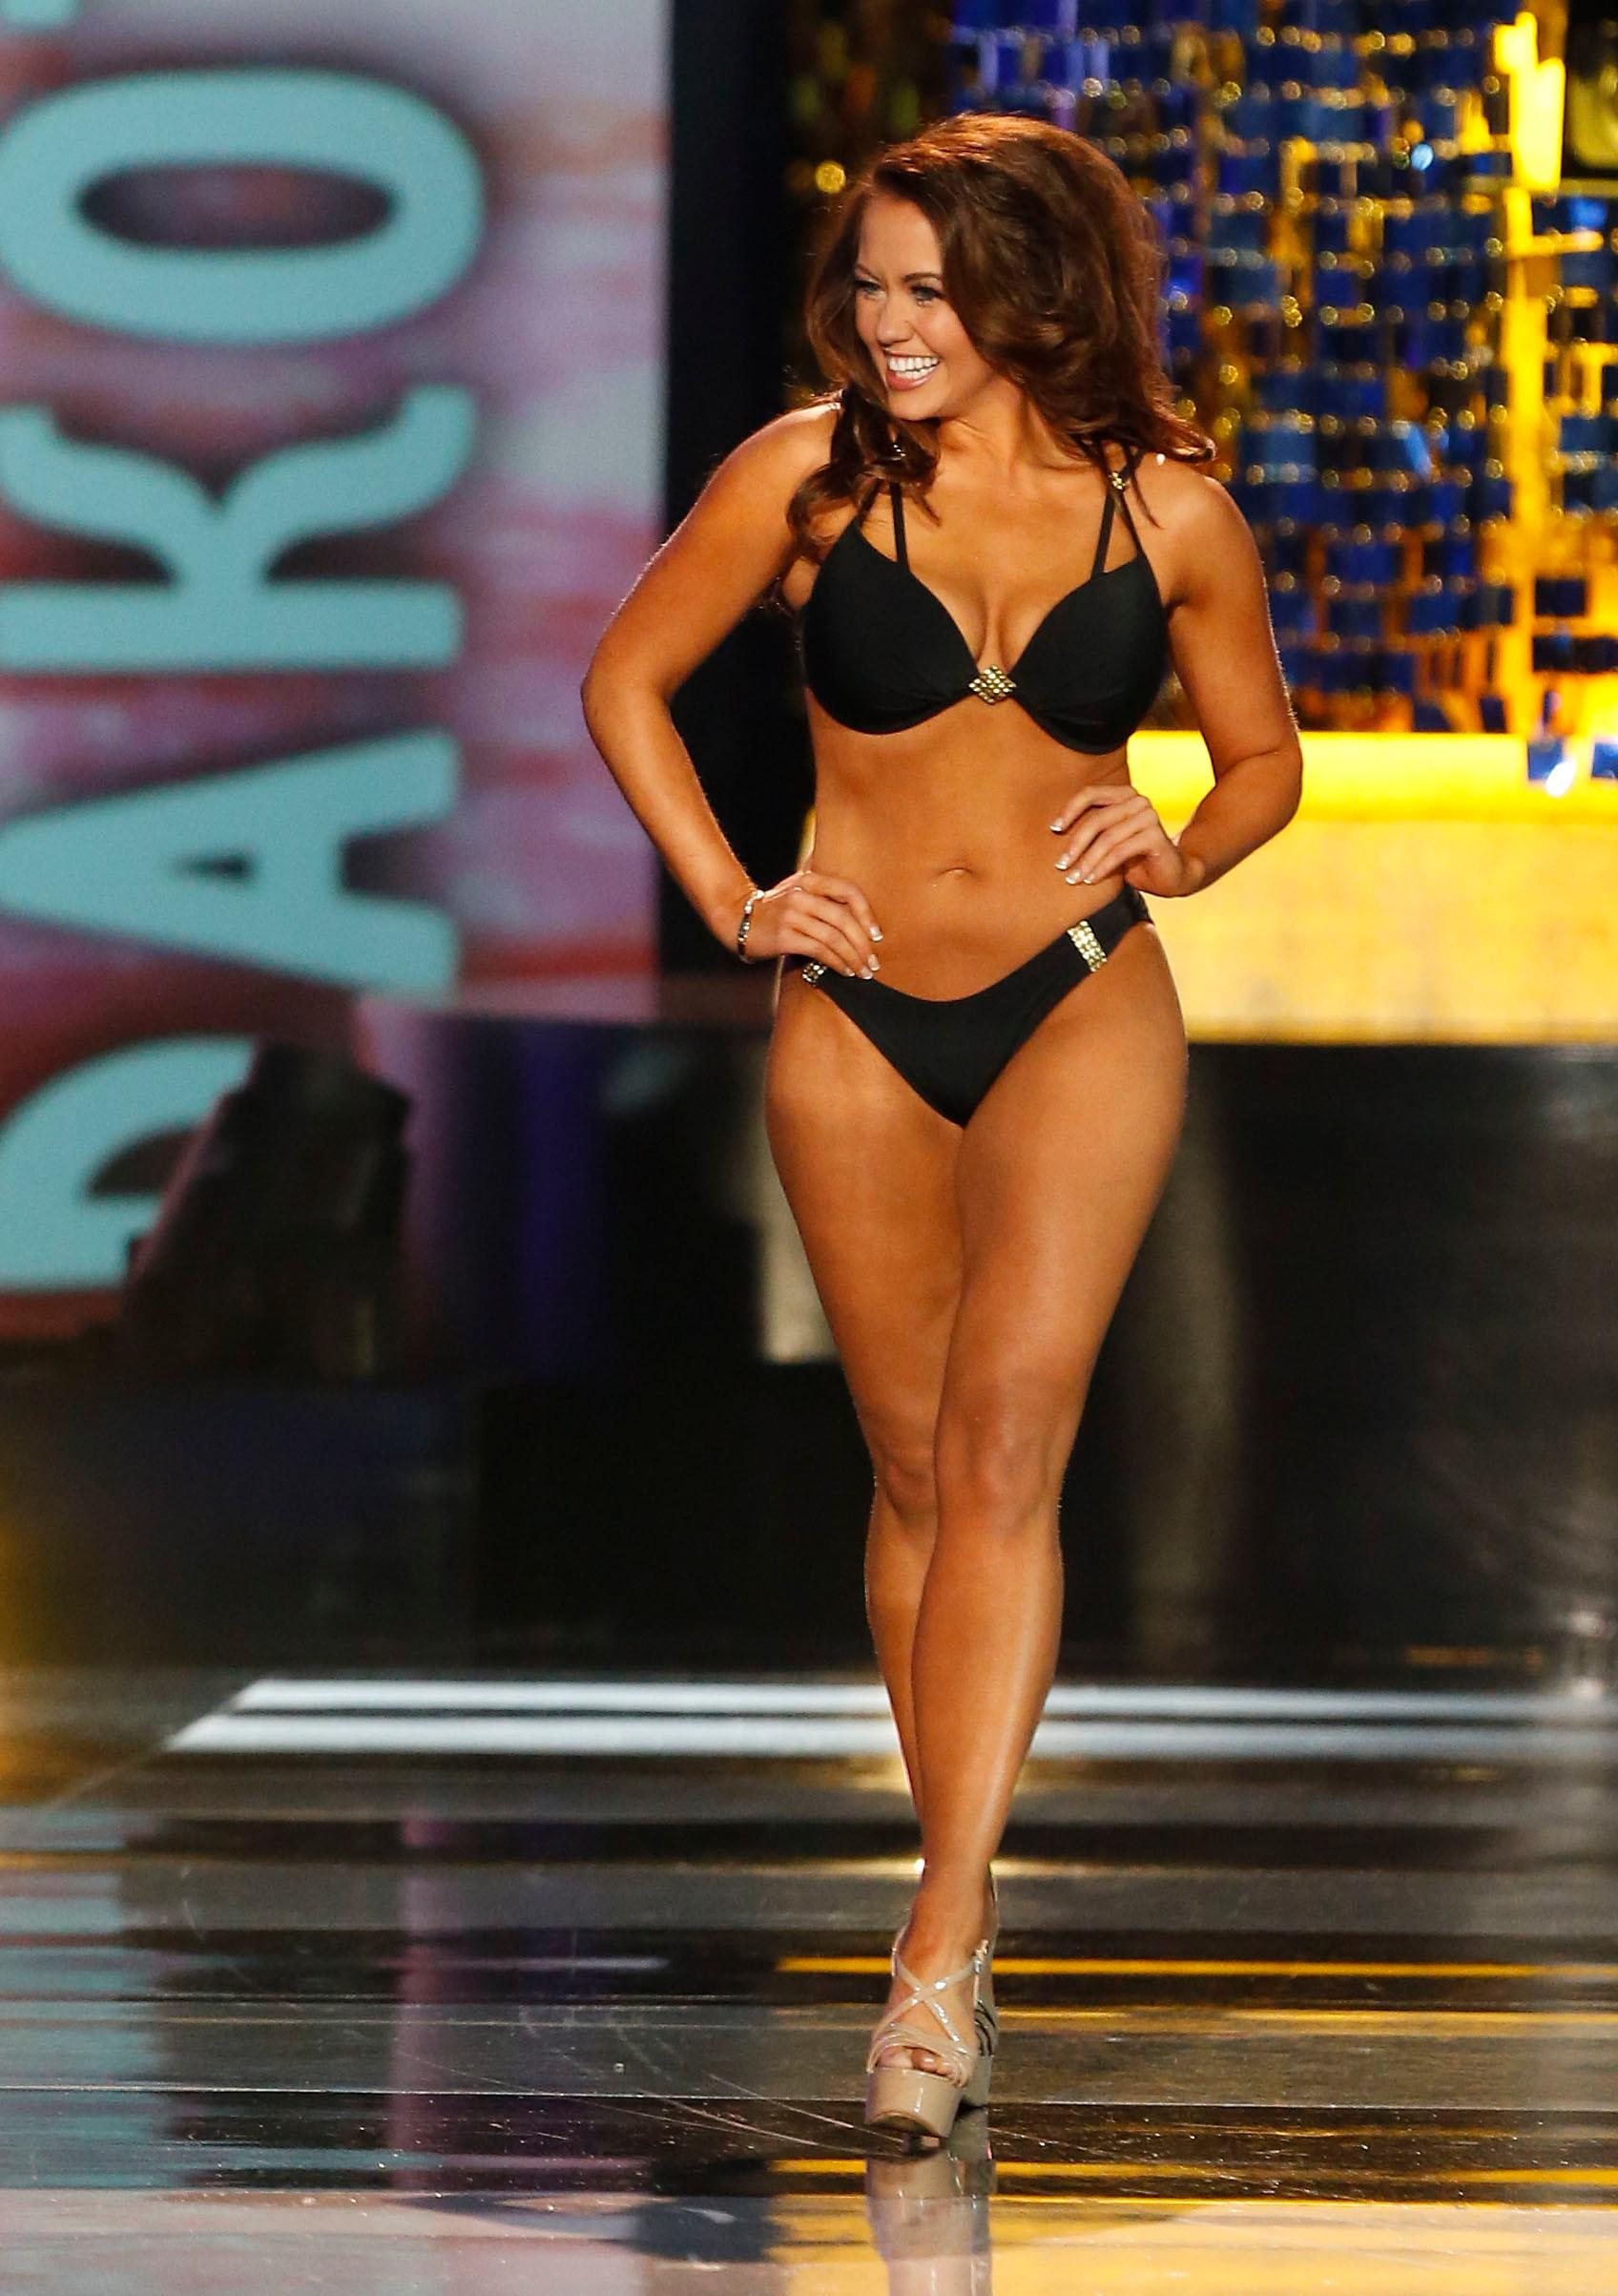 Miss North Dakota Cara Mund walks on the stage during swimsuit competition at Miss America 2018 pageant, Sunday, Sept. 10, 2017, in Atlantic City, N.J. (AP Photo/Noah K. Murray)